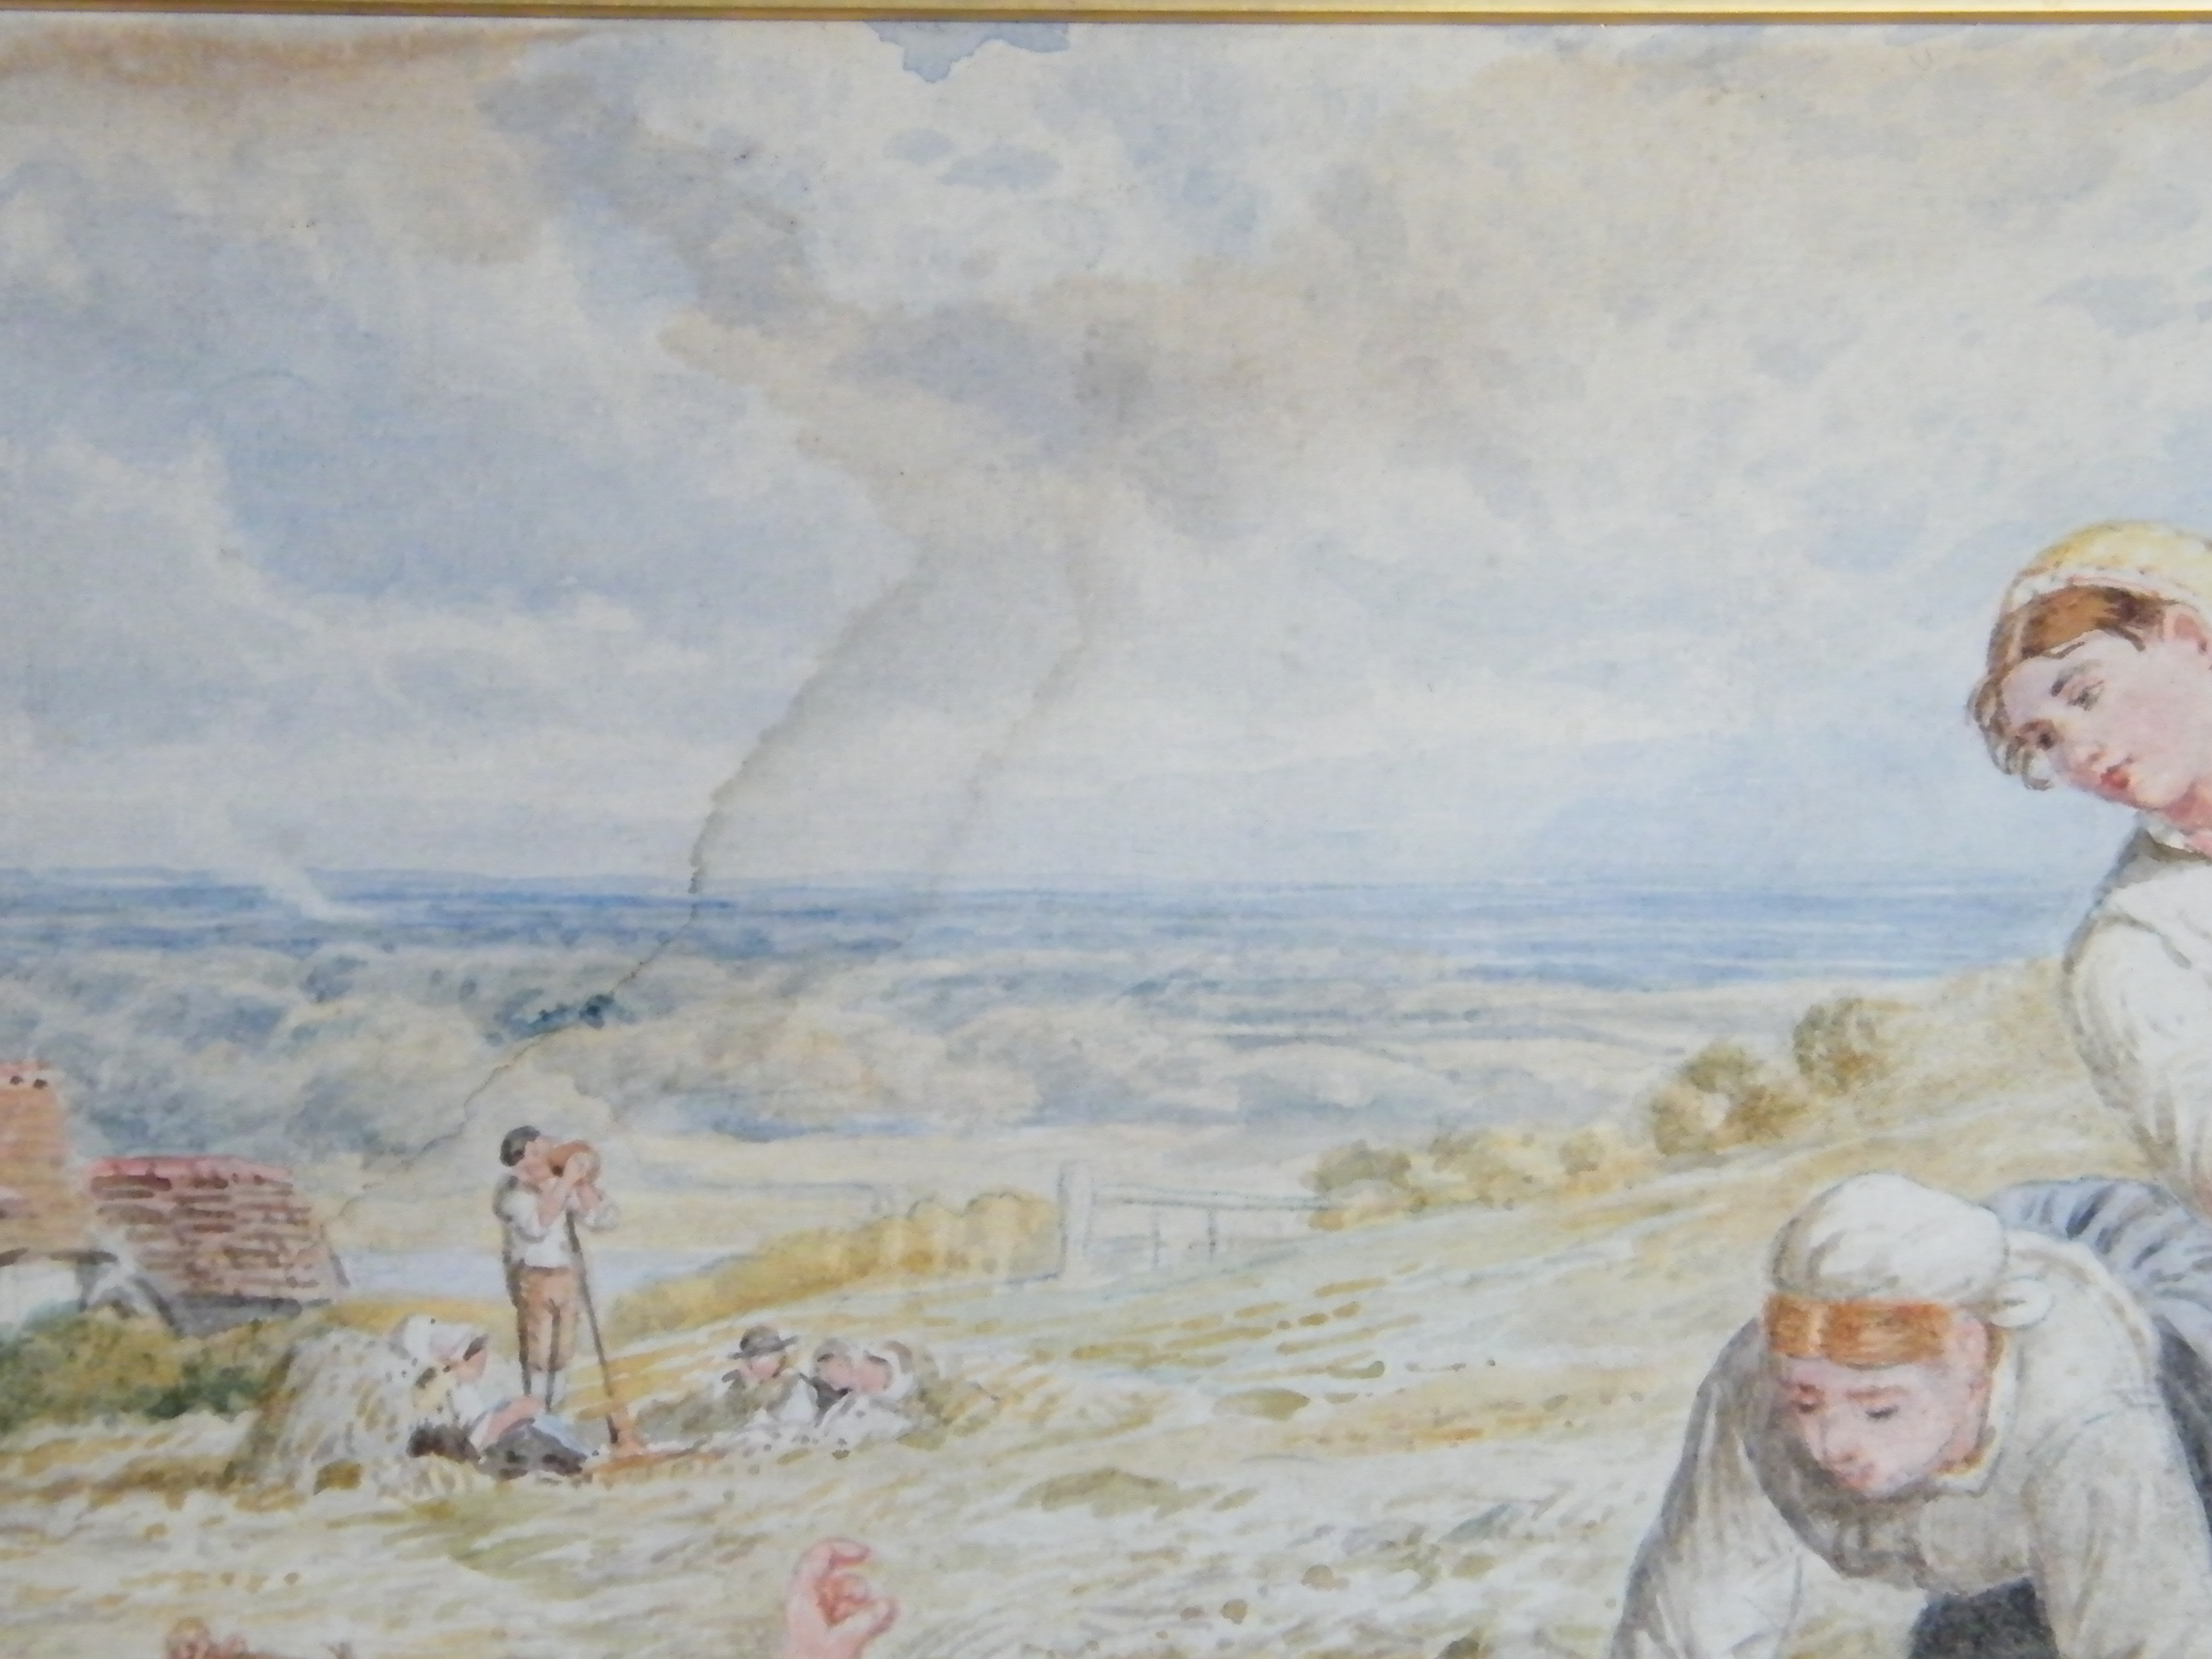 #1515  Victorian Watercolour Painting by Myles Birket Foster R.W.S. c1875  **Price on Request**